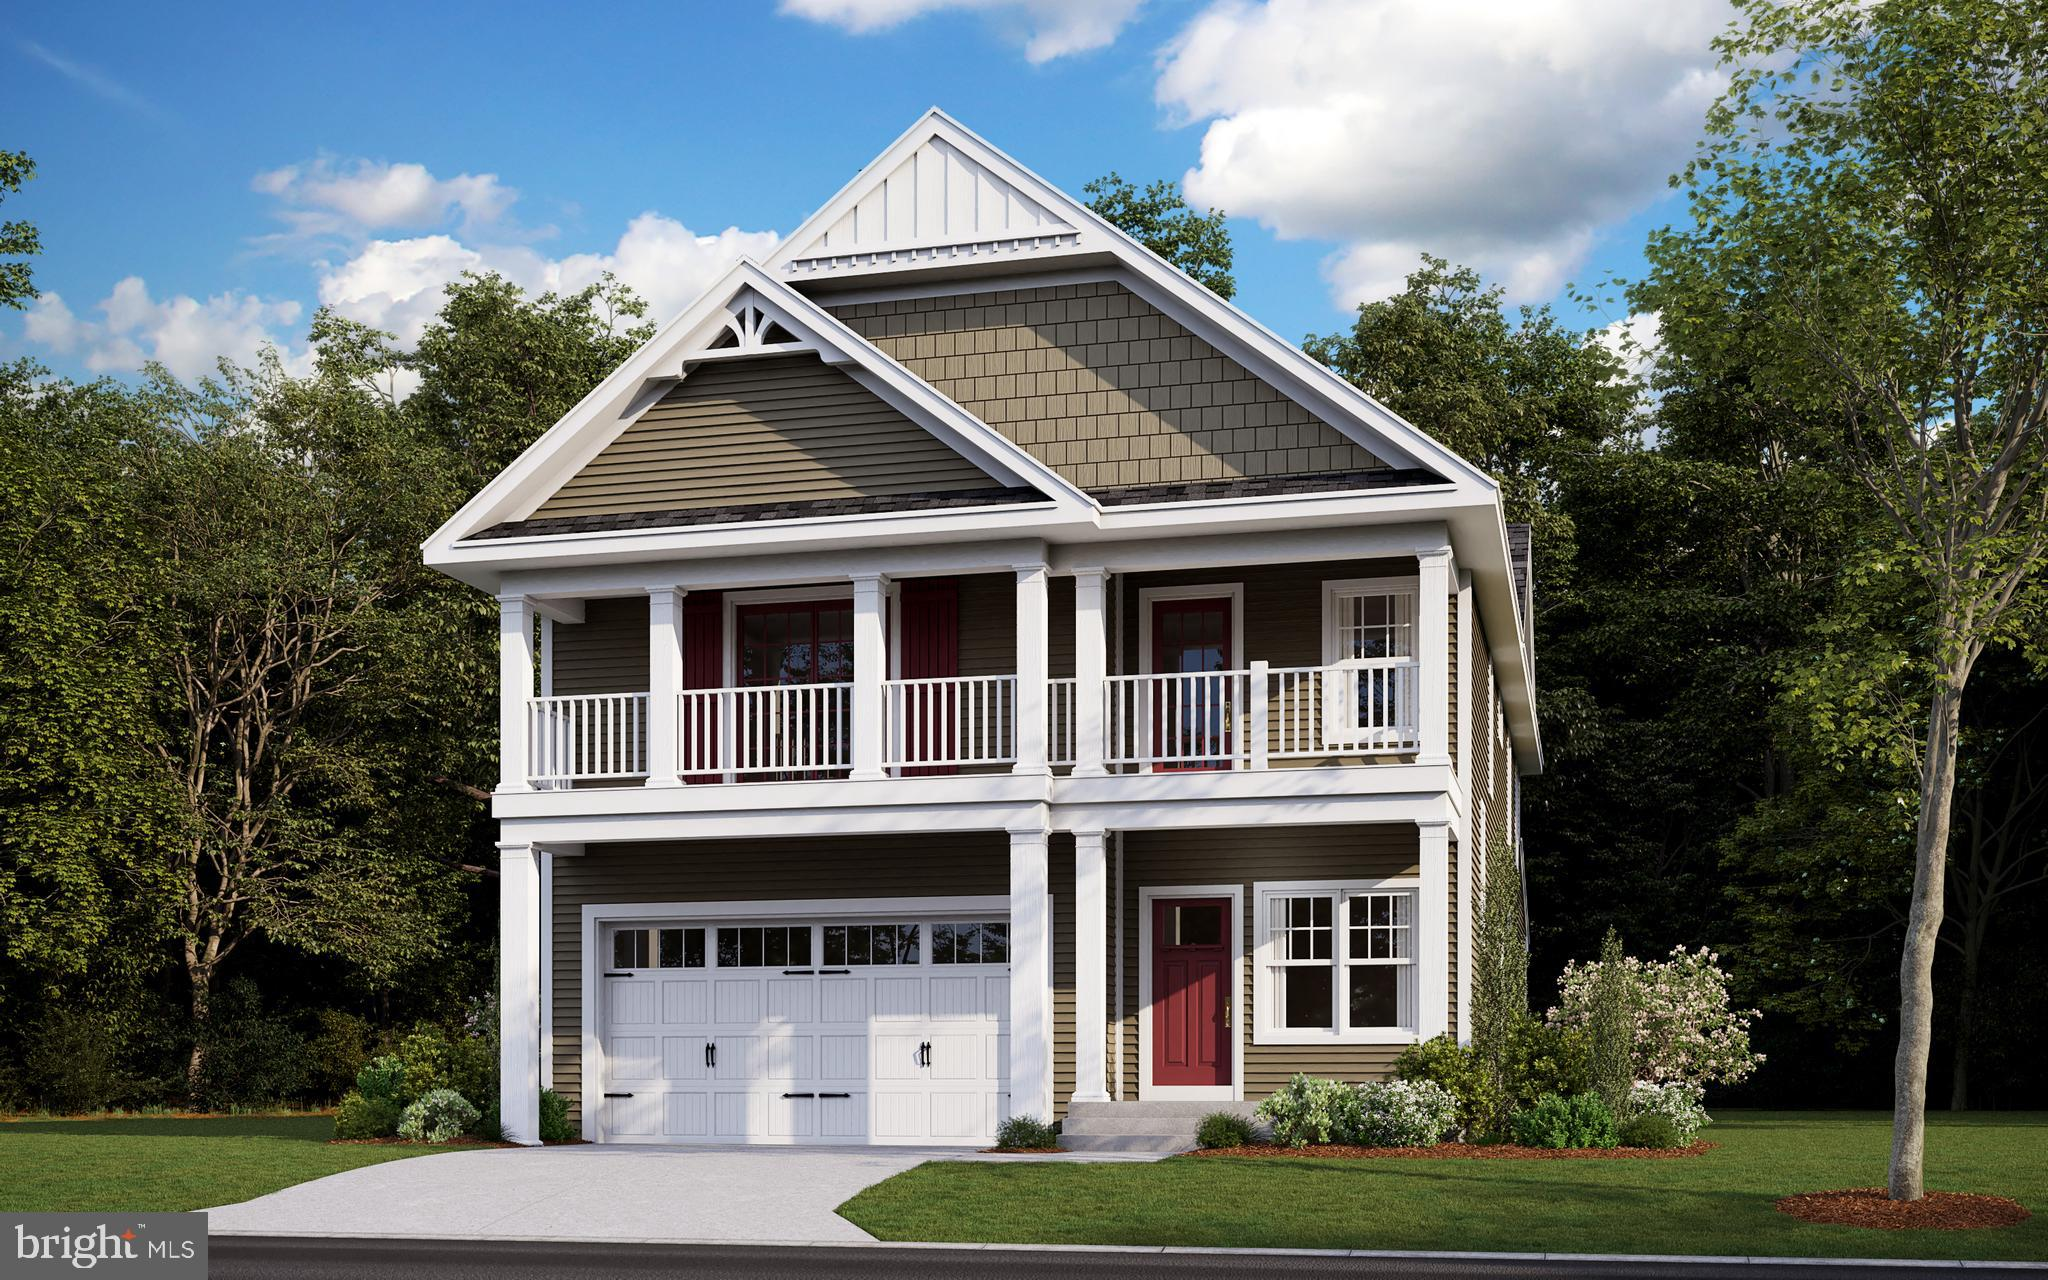 McKinney's Grove is a new, luxury neighborhood featuring only 20 lots in a gorgeous, wooded communit